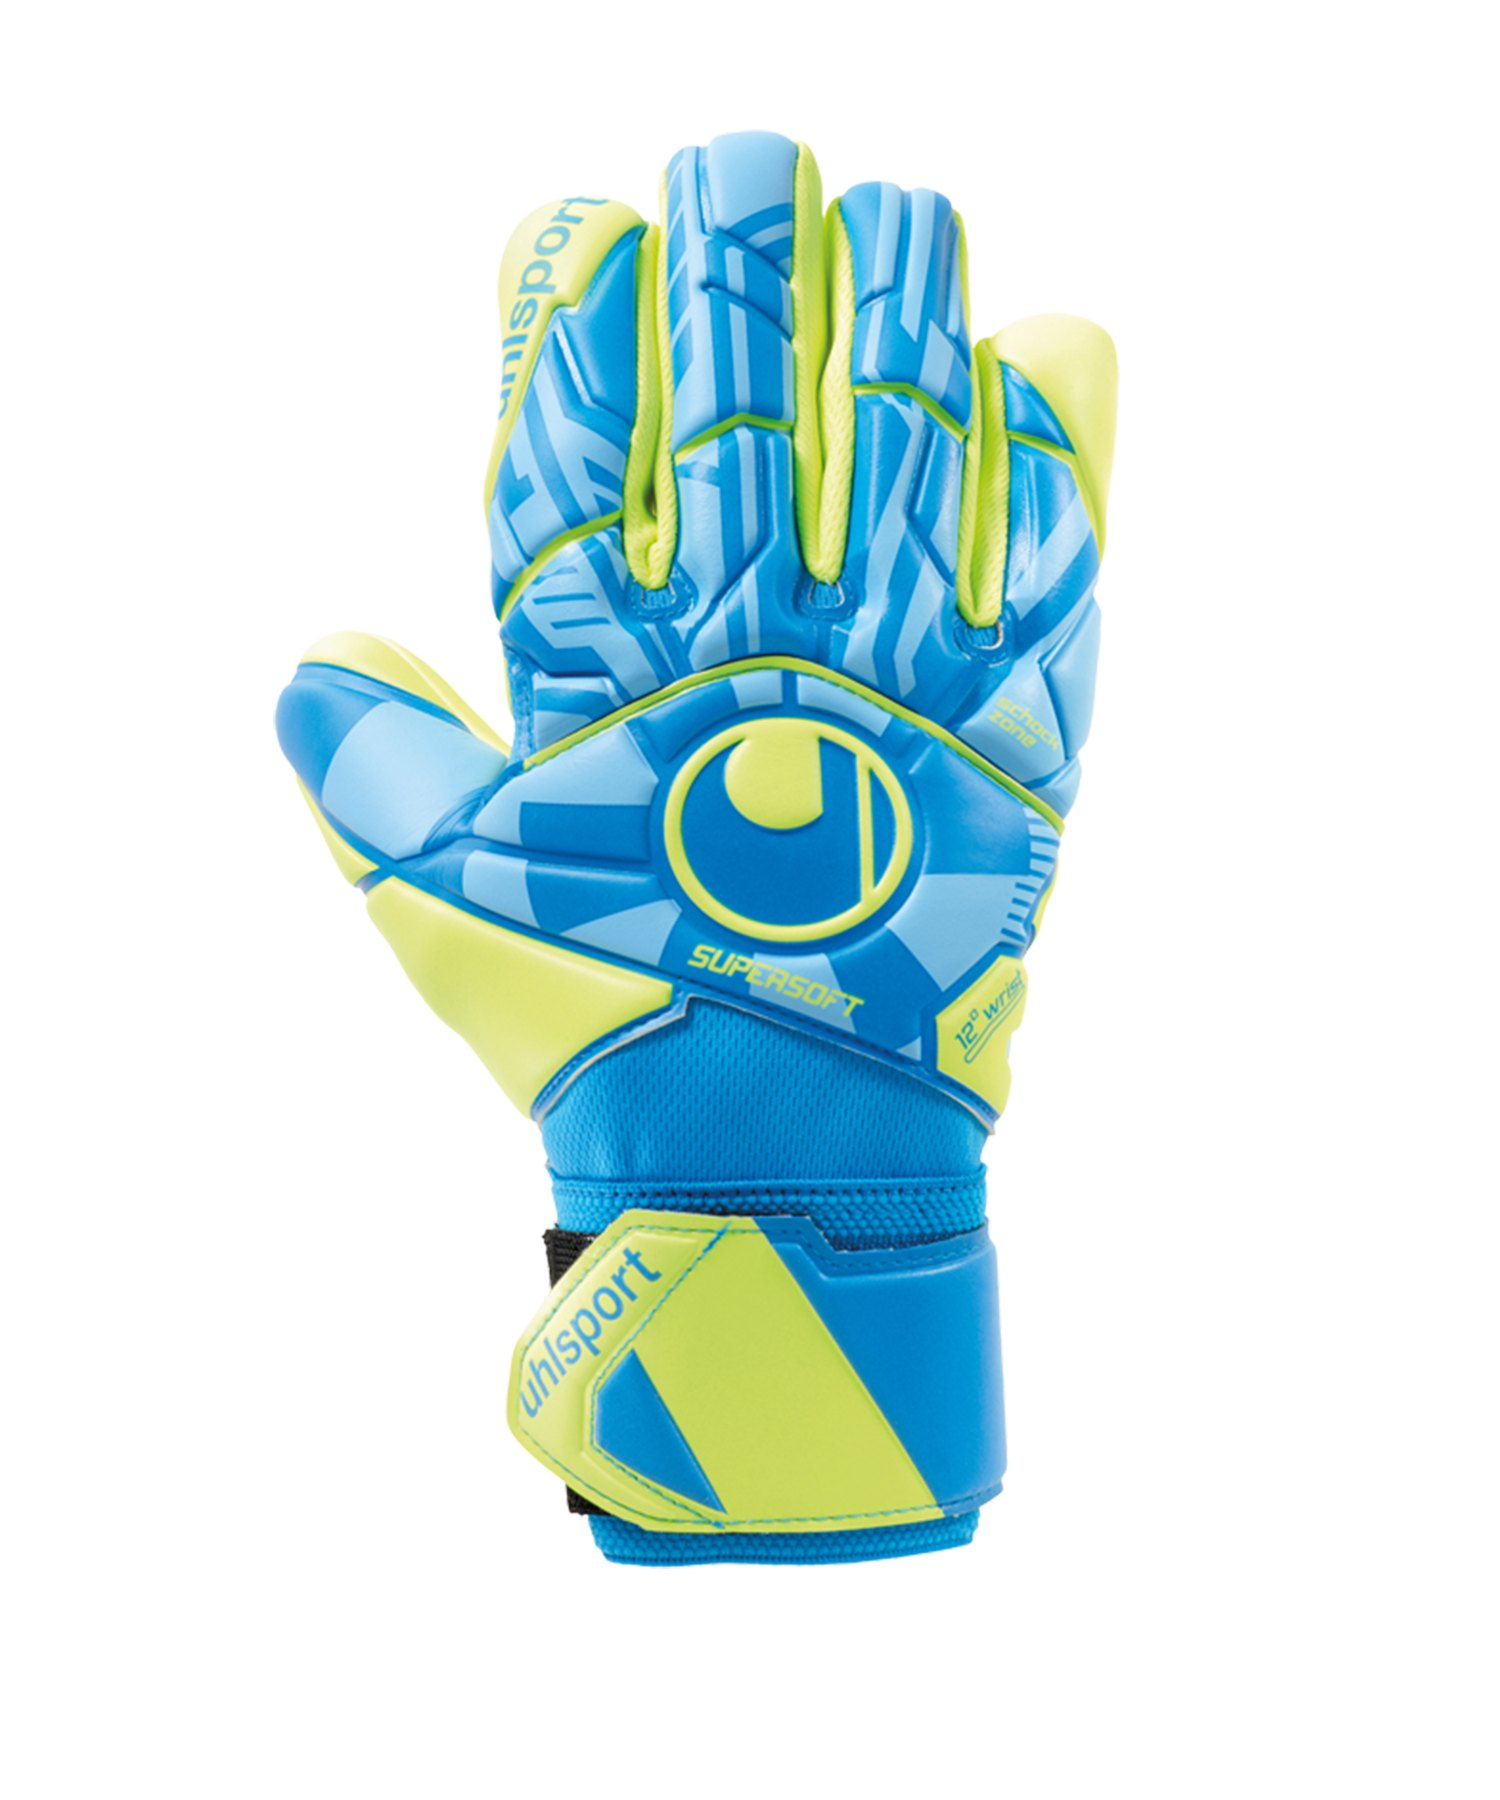 Uhlsport Radar Control Supersoft HN Handschuh F01 - Blau